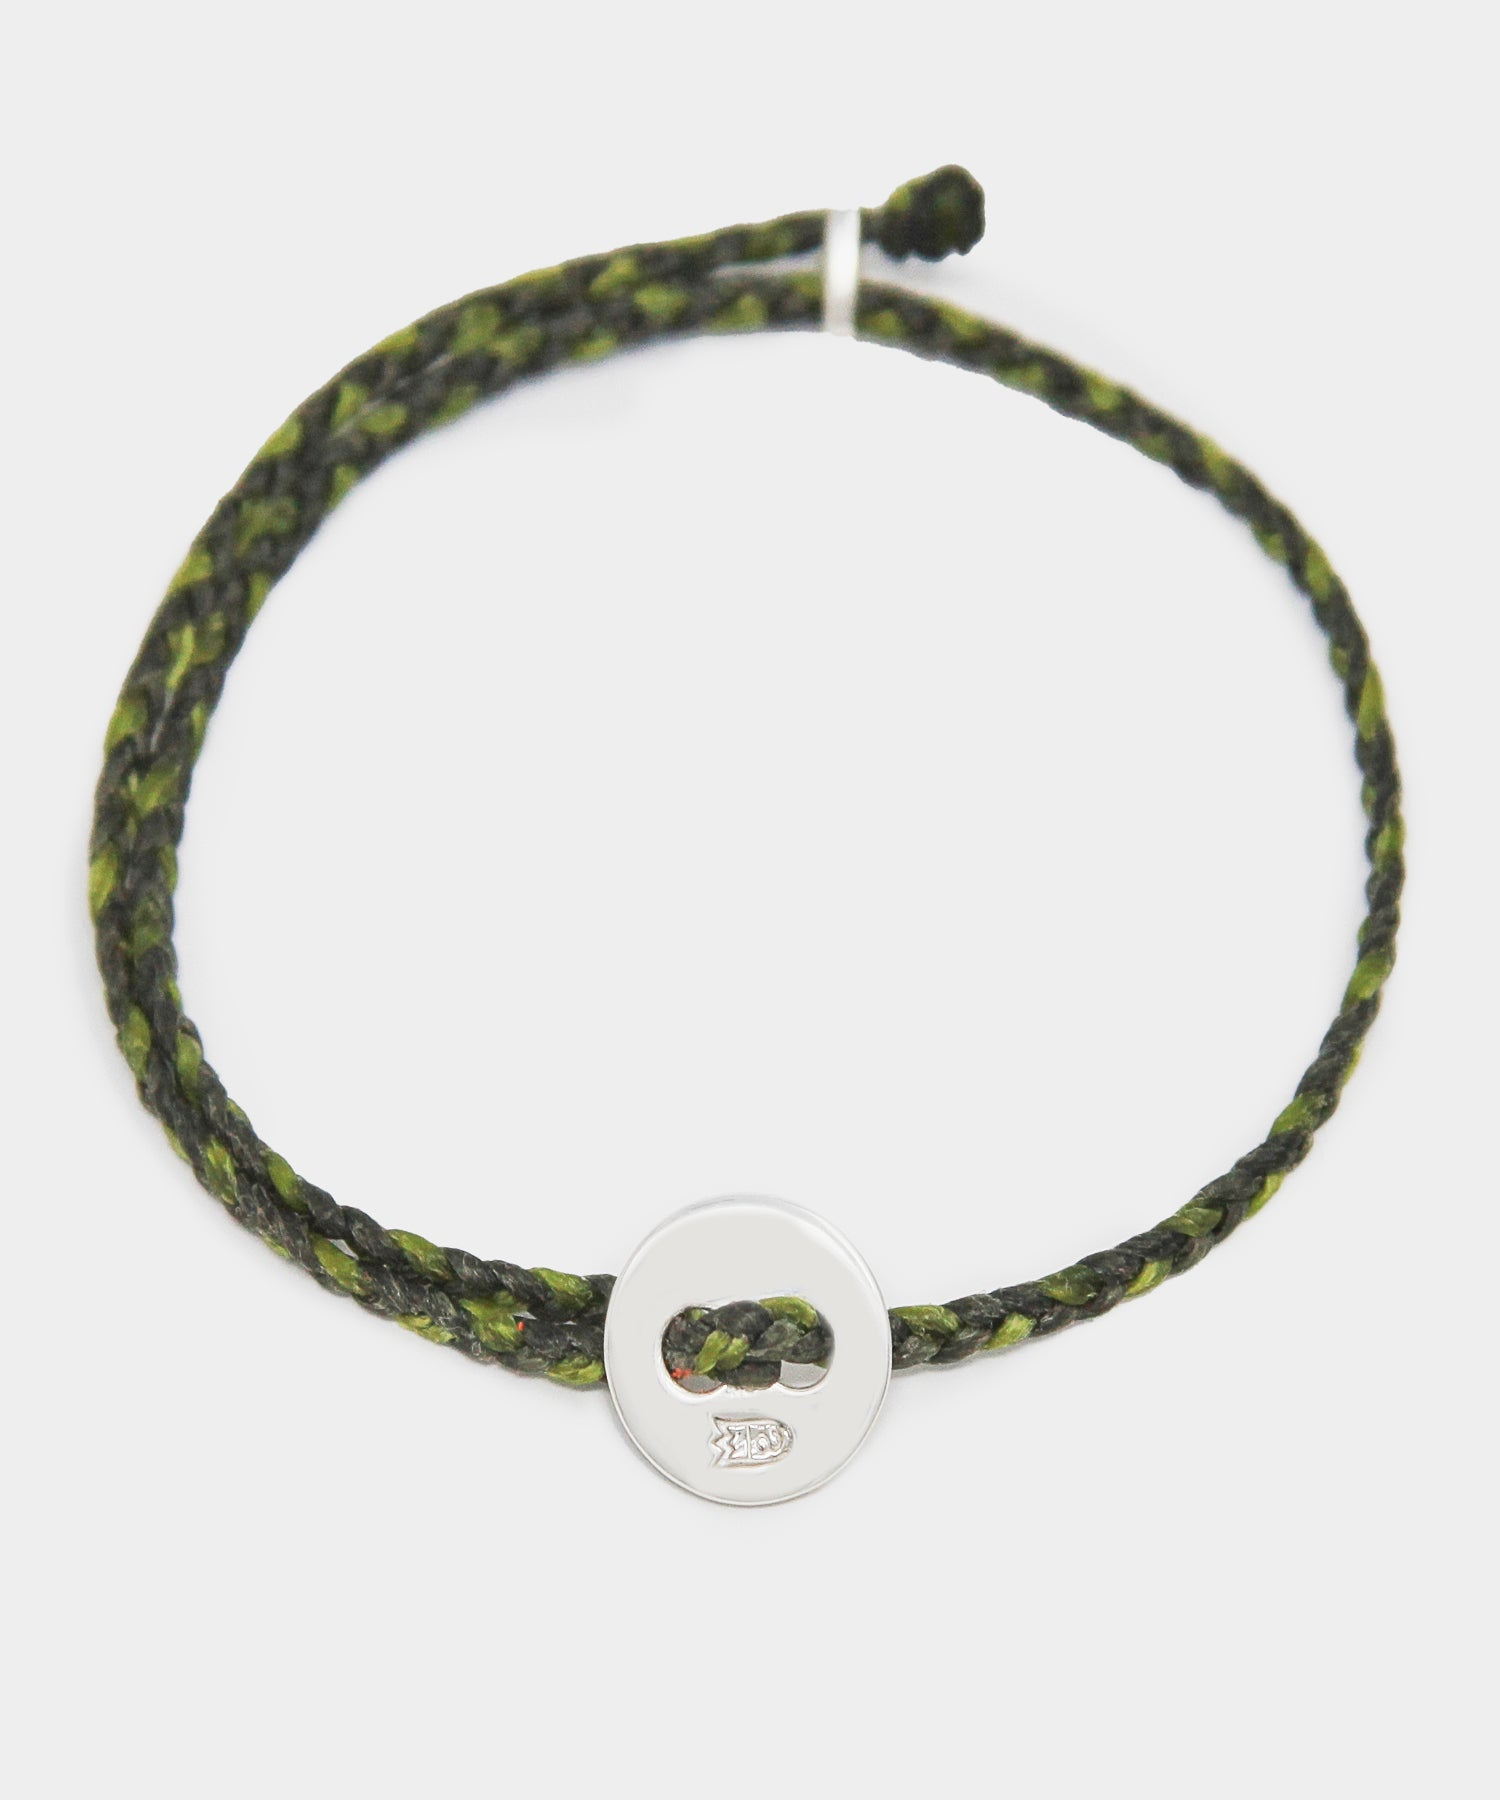 Scosha Signature 4MM Bracelet in Army and Olive